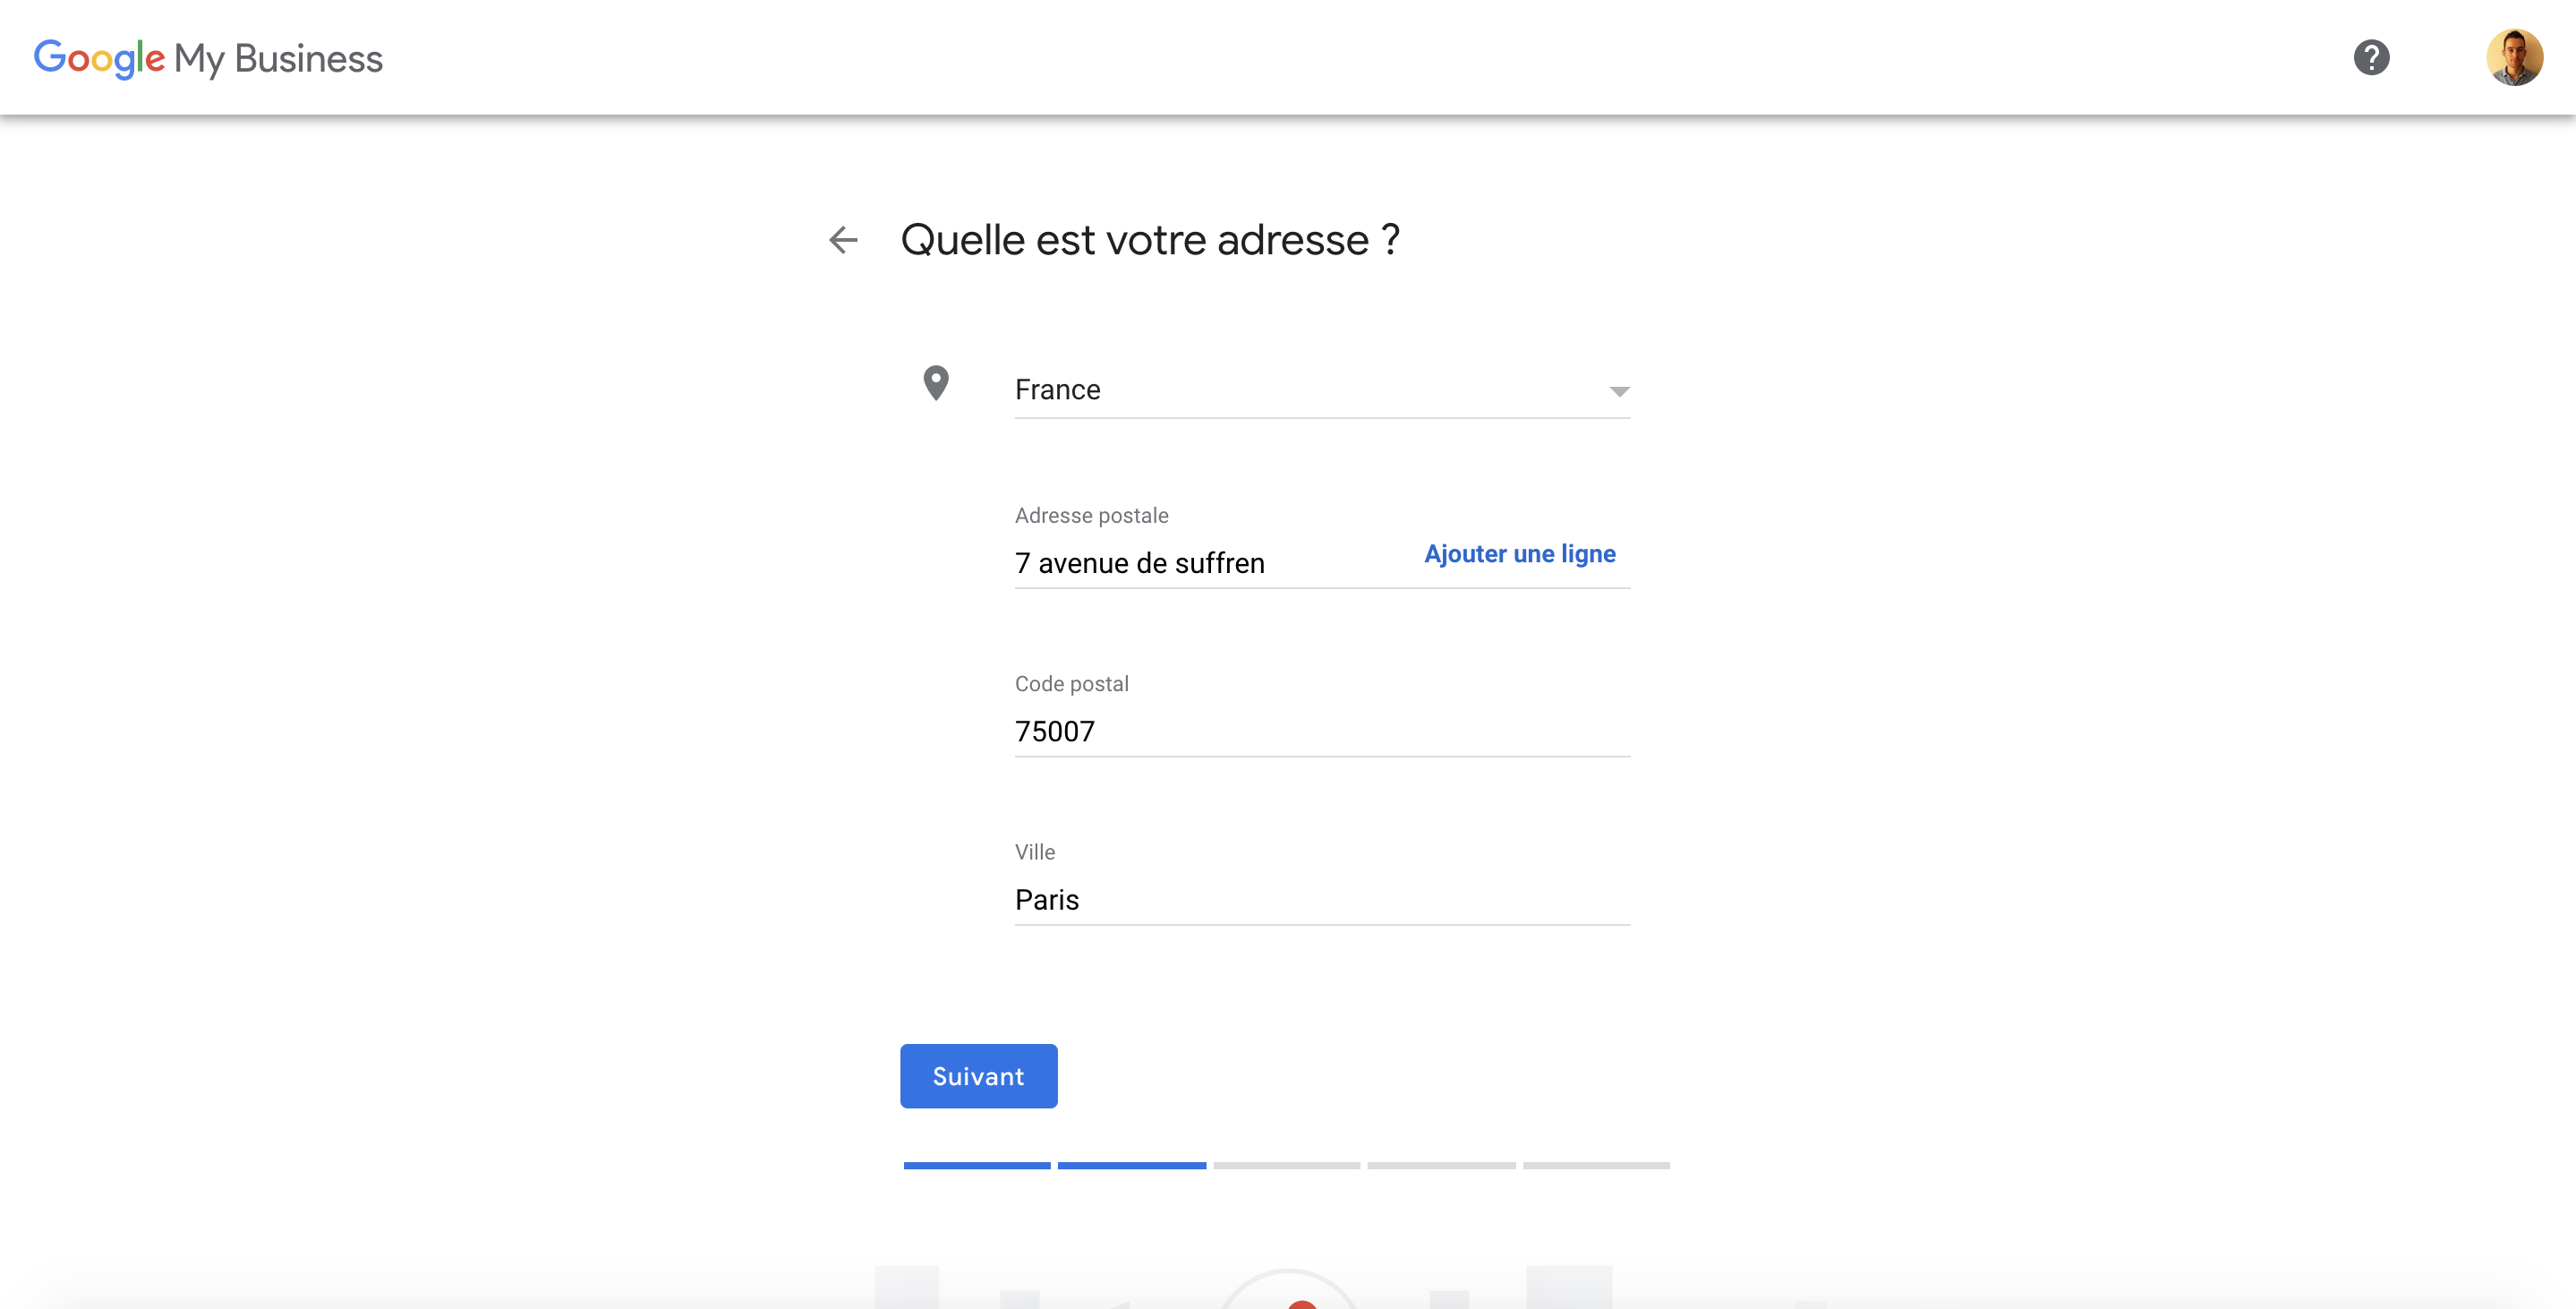 inscription-google-my-business-adresse